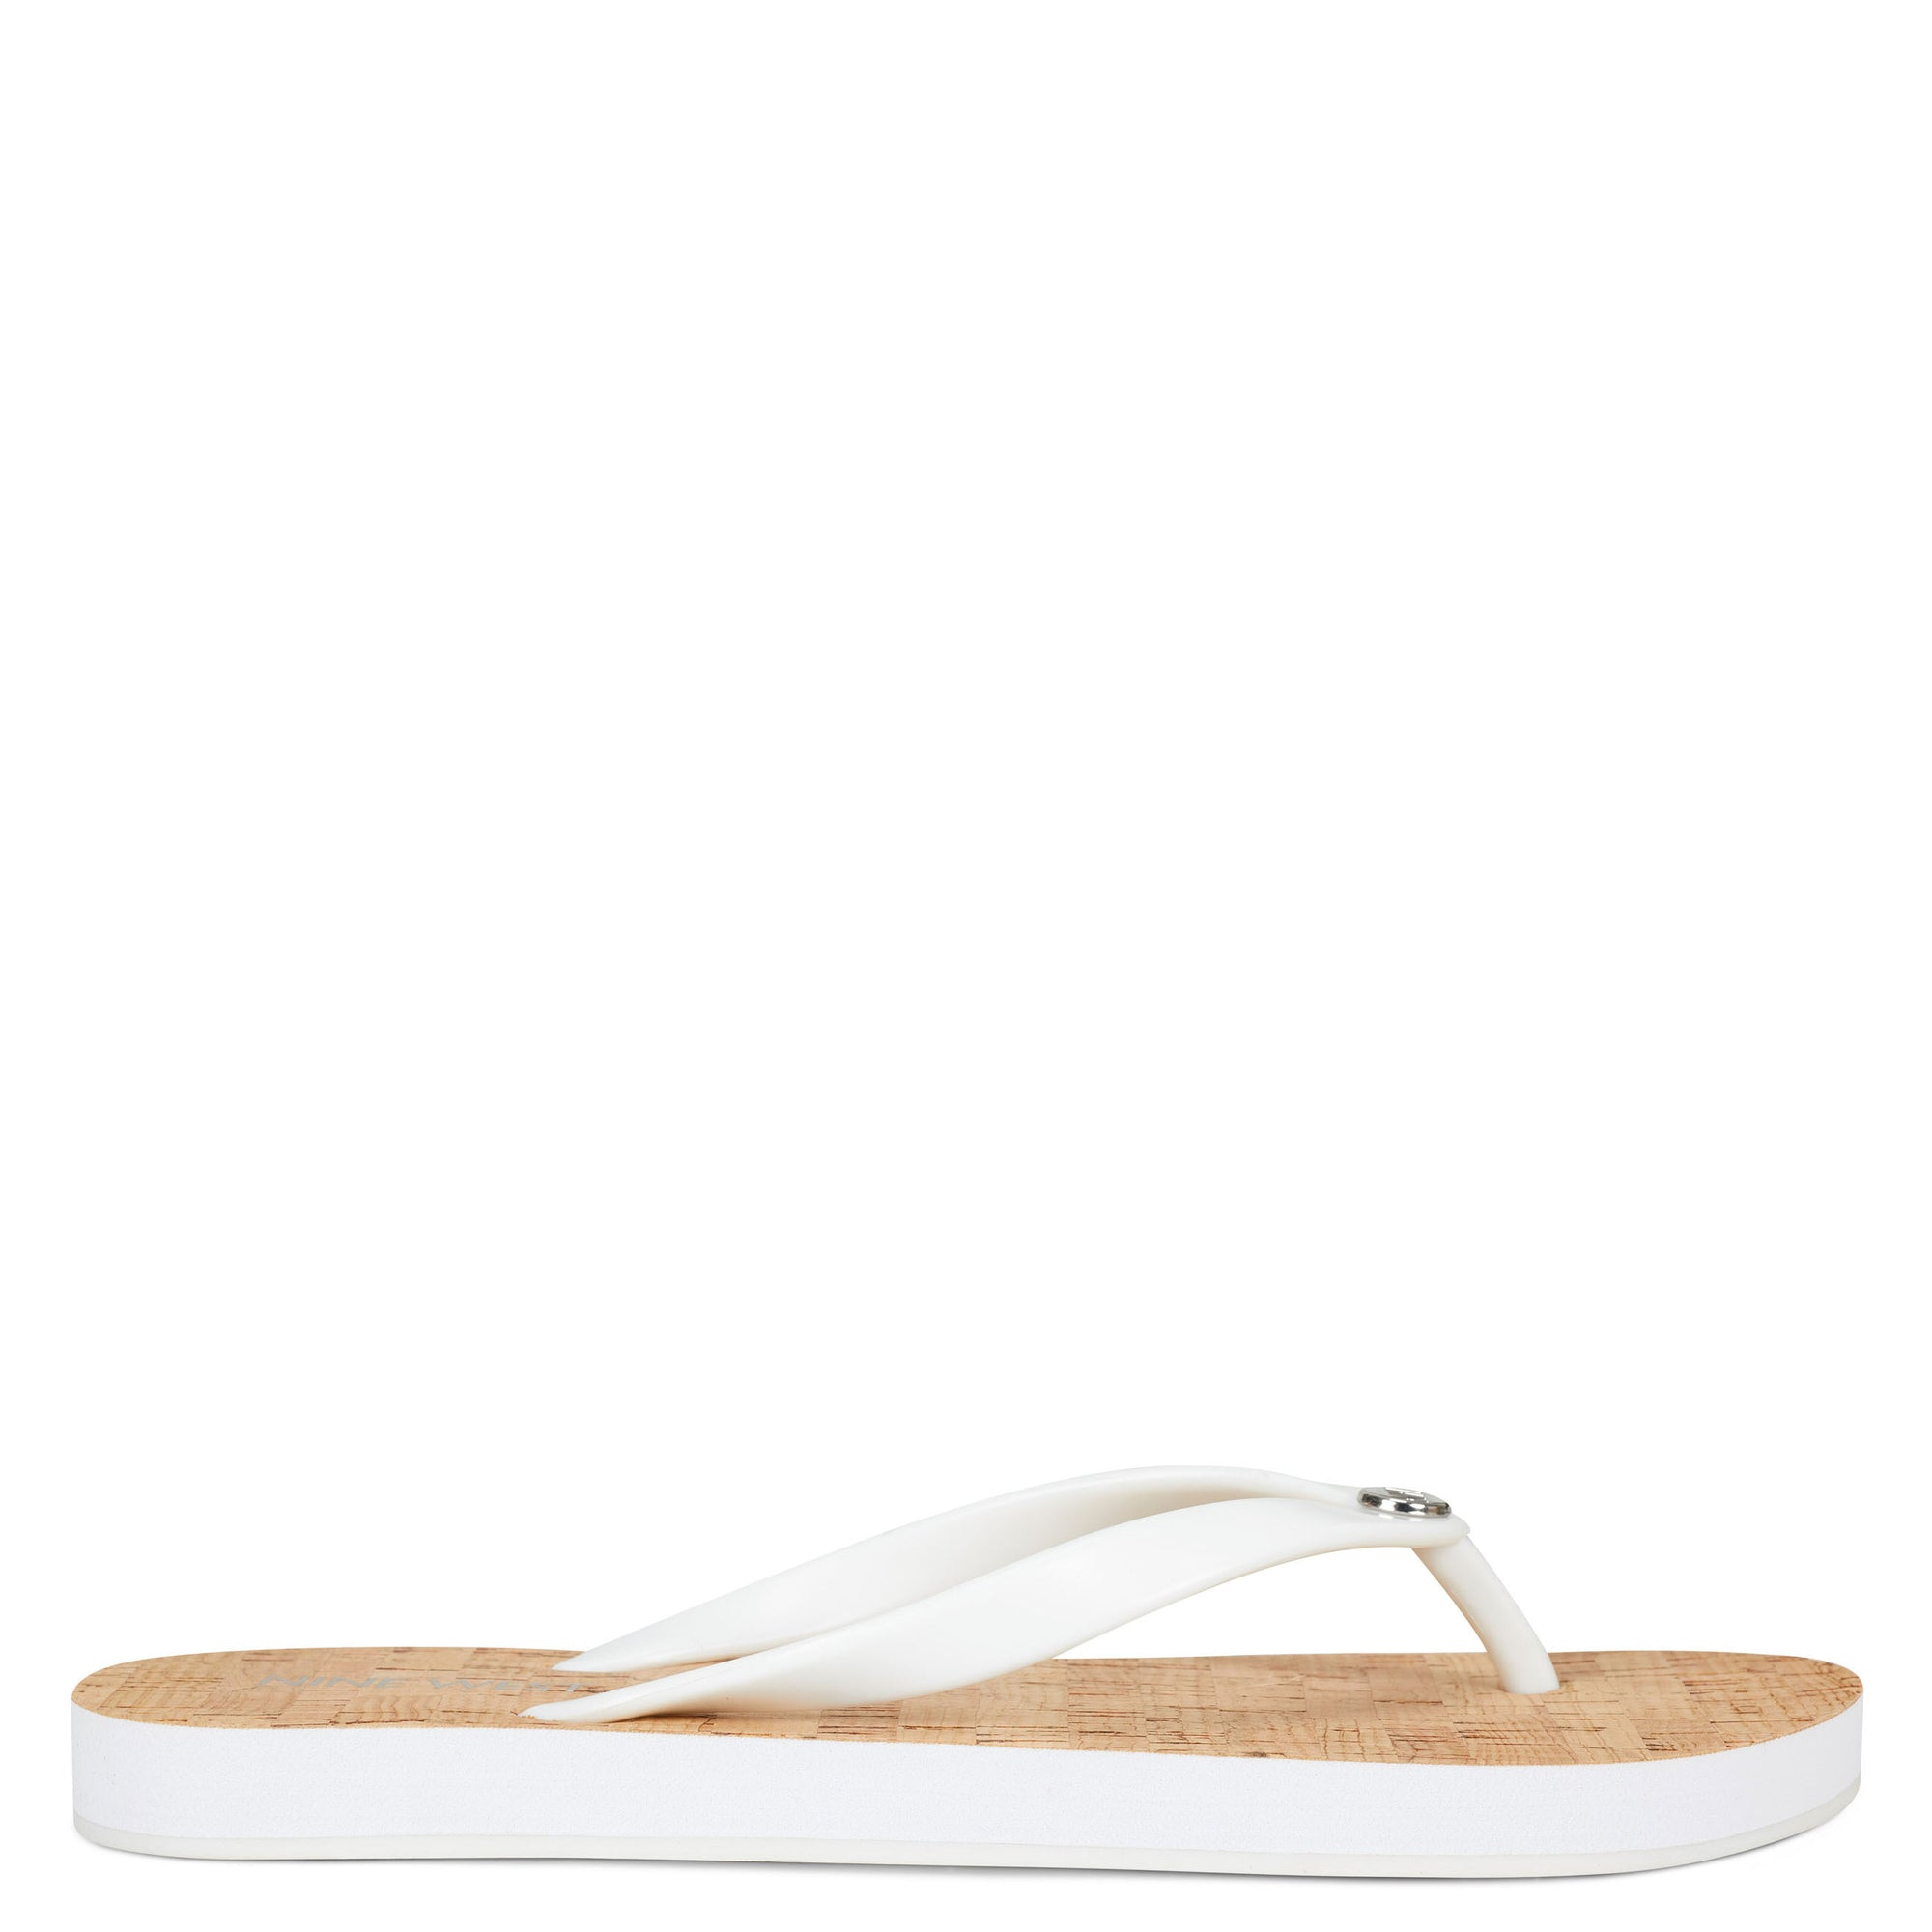 crissa-flip-flop-in-white